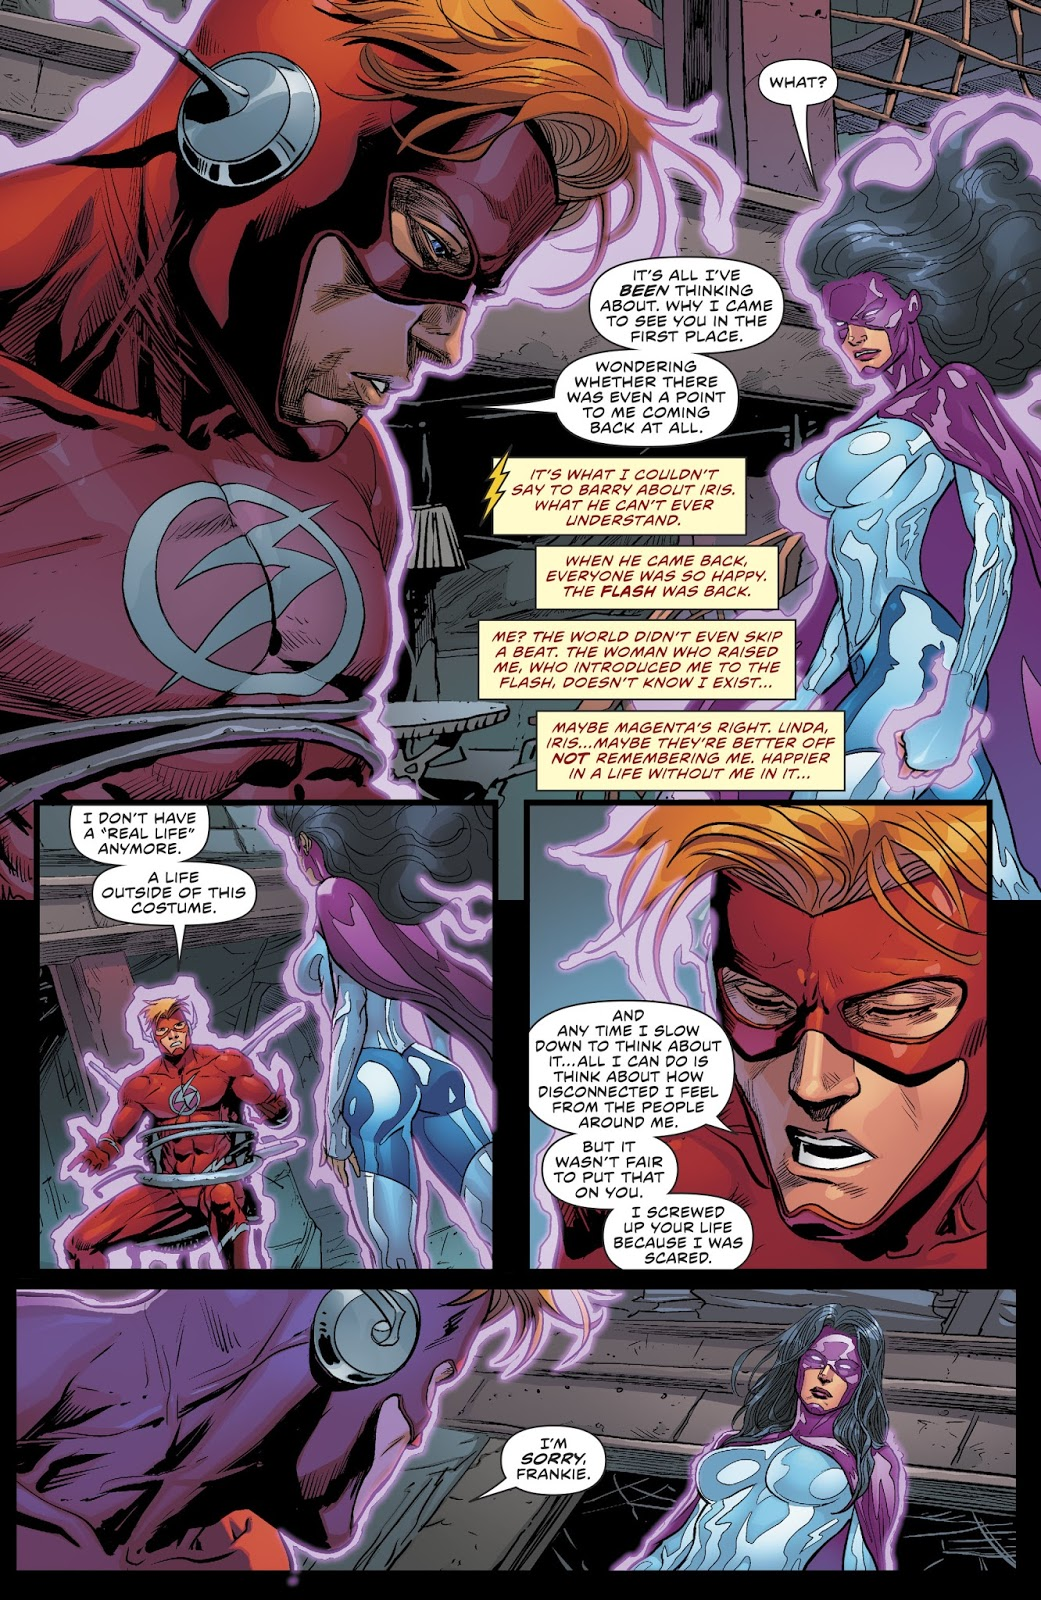 From - The Flash Vol. 5 Annual #1